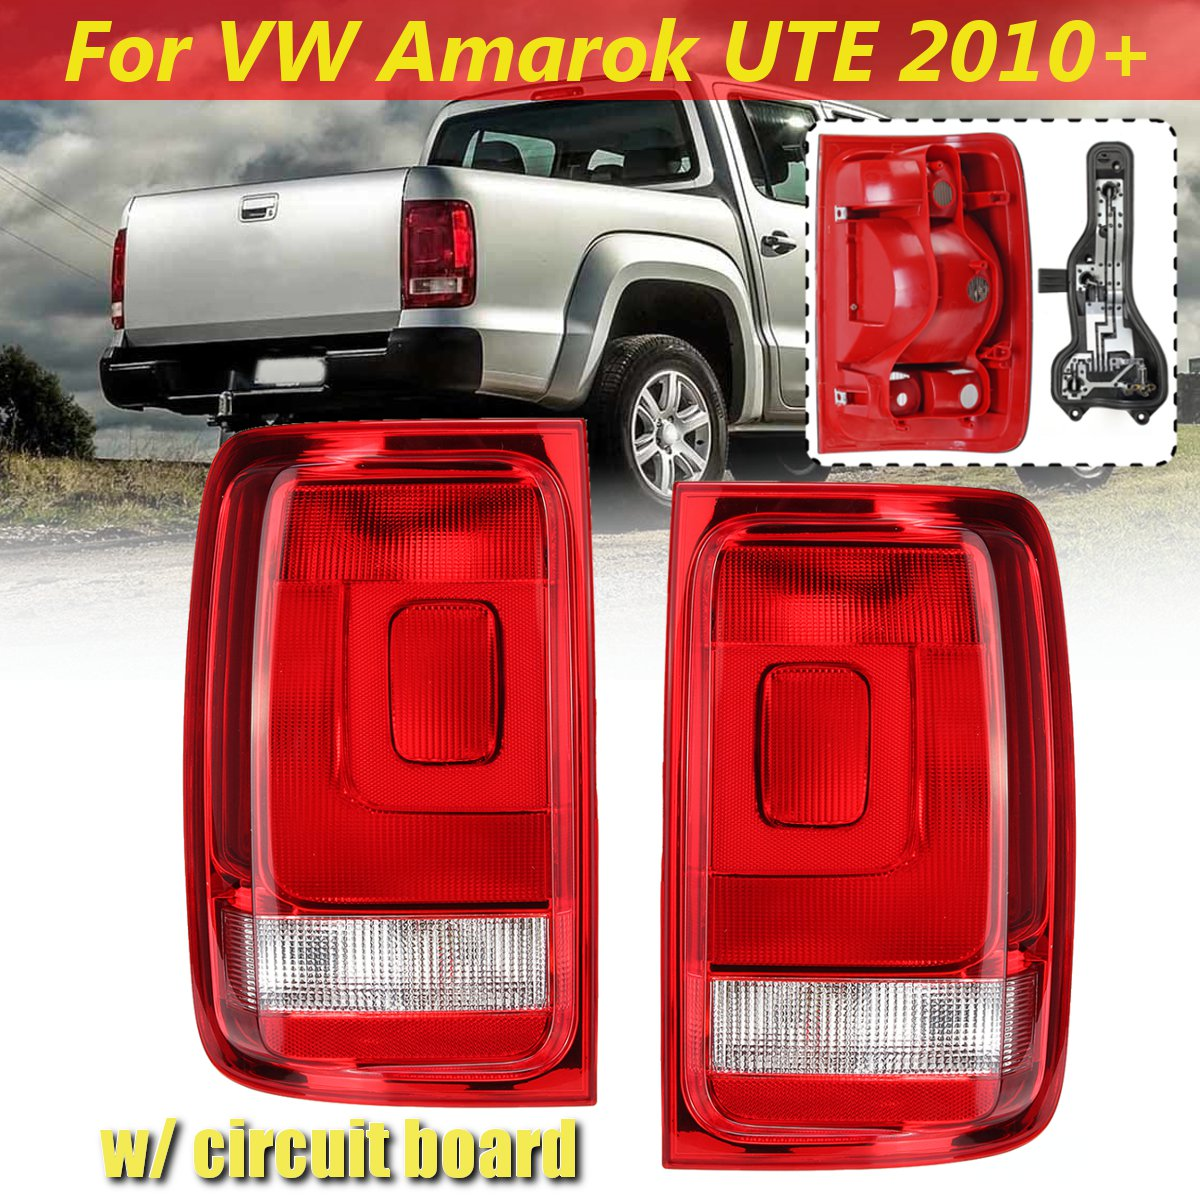 For VW Amarok UTE Pickup 2010 2011 2012 2013 2014-UP Pair Rear Tail Light Brake Signal Lamp Tail Light Lamp With Circuit BoardFor VW Amarok UTE Pickup 2010 2011 2012 2013 2014-UP Pair Rear Tail Light Brake Signal Lamp Tail Light Lamp With Circuit Board